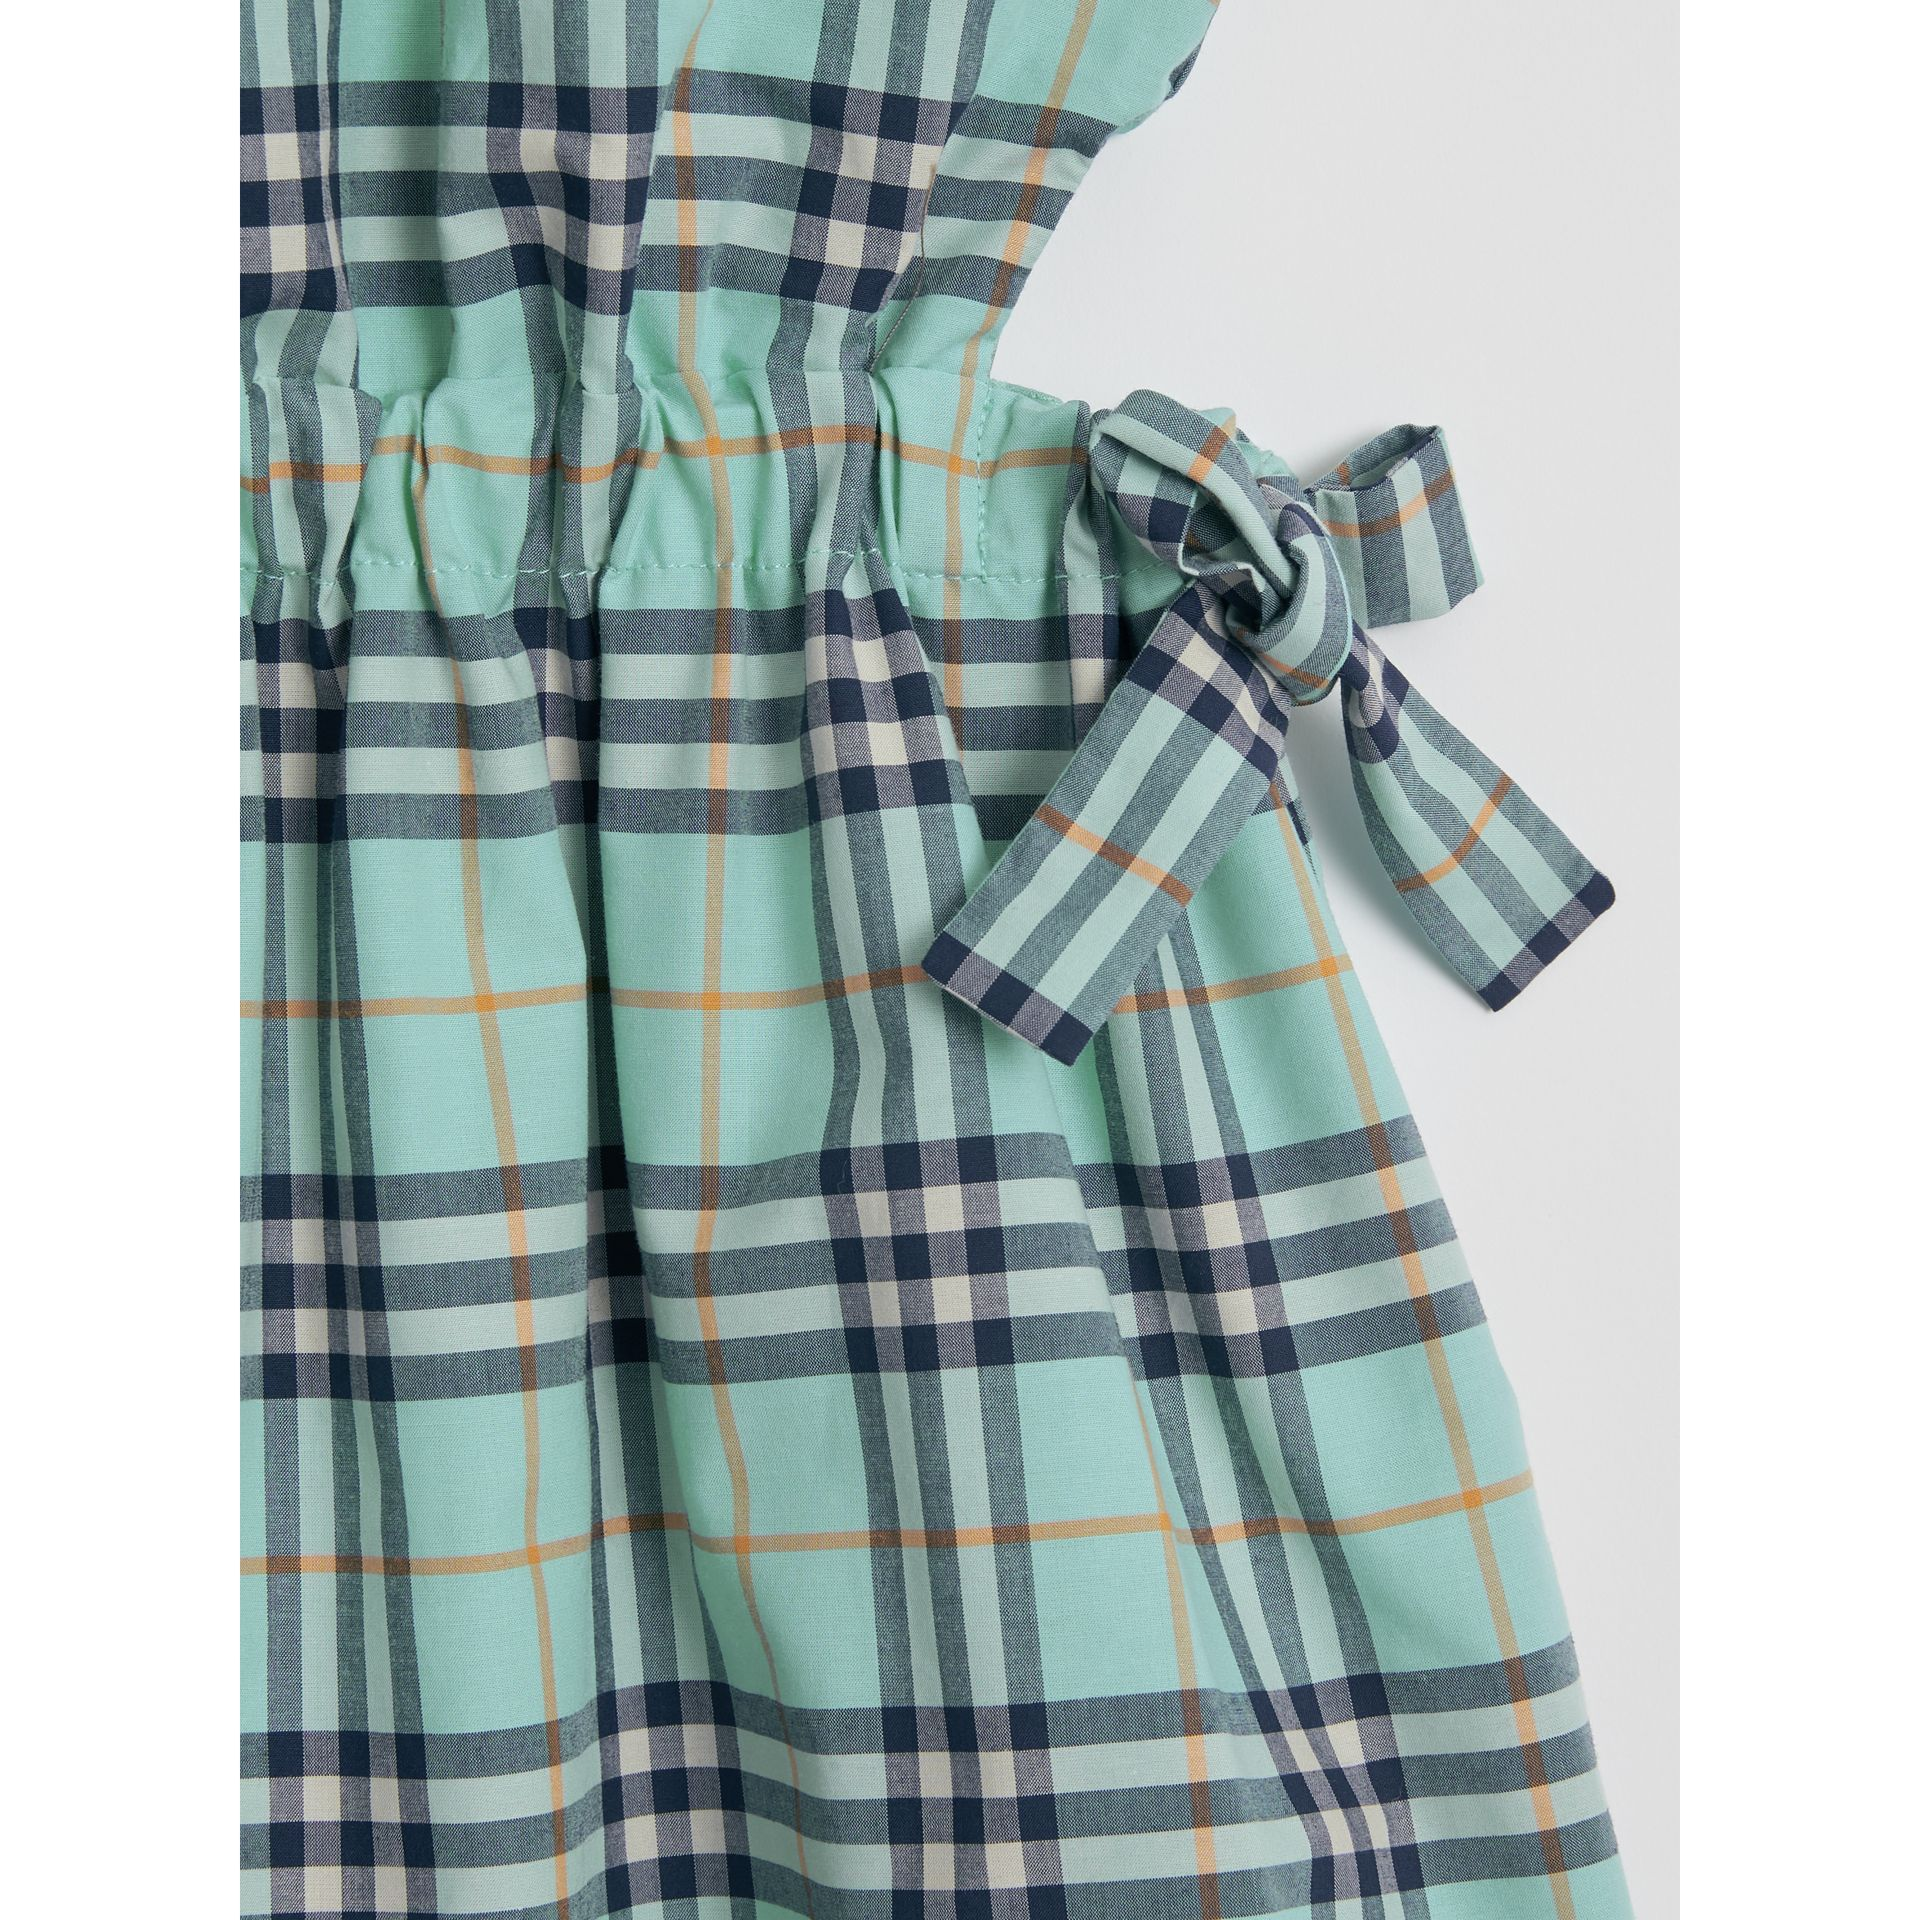 Tie Detail Check Cotton Dress in Bright Aqua | Burberry - gallery image 1